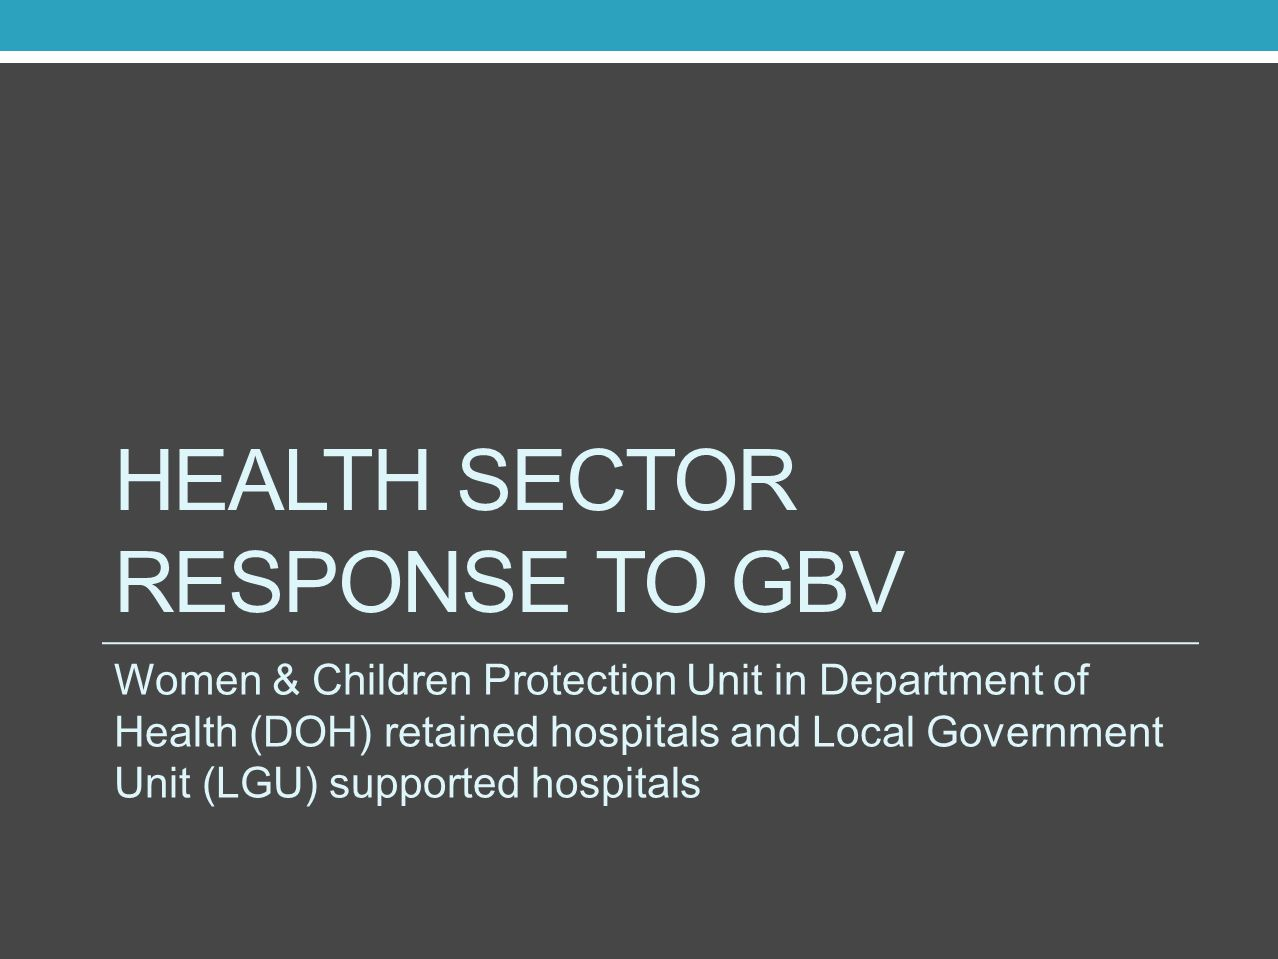 Health sector response to gbv